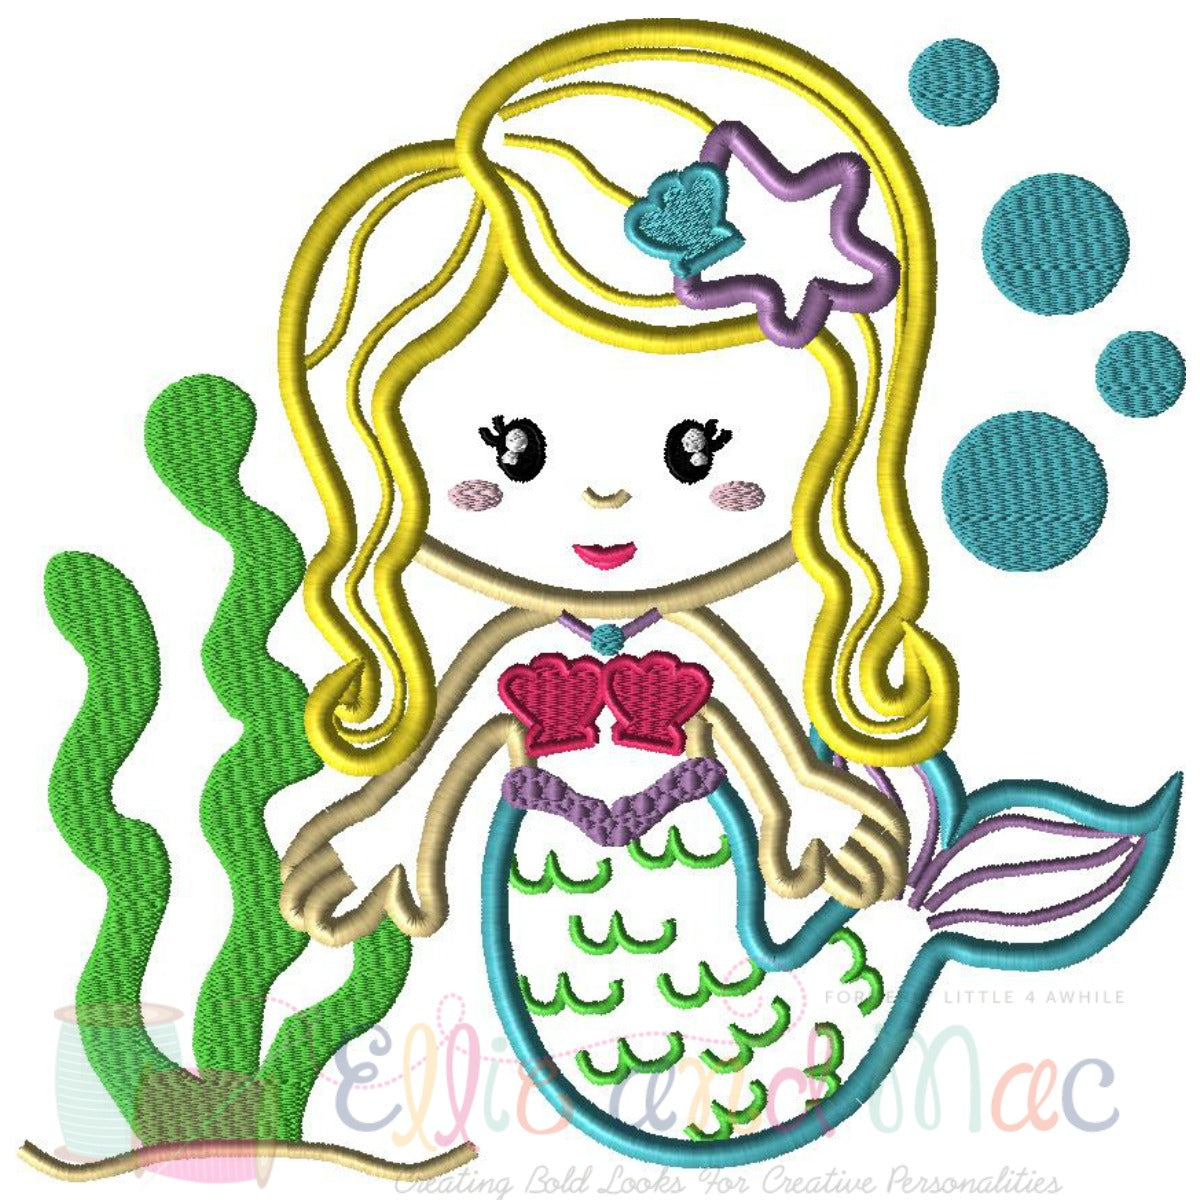 Mermaid Ocean Scene Applique Embroidery Design Ellie And Mac